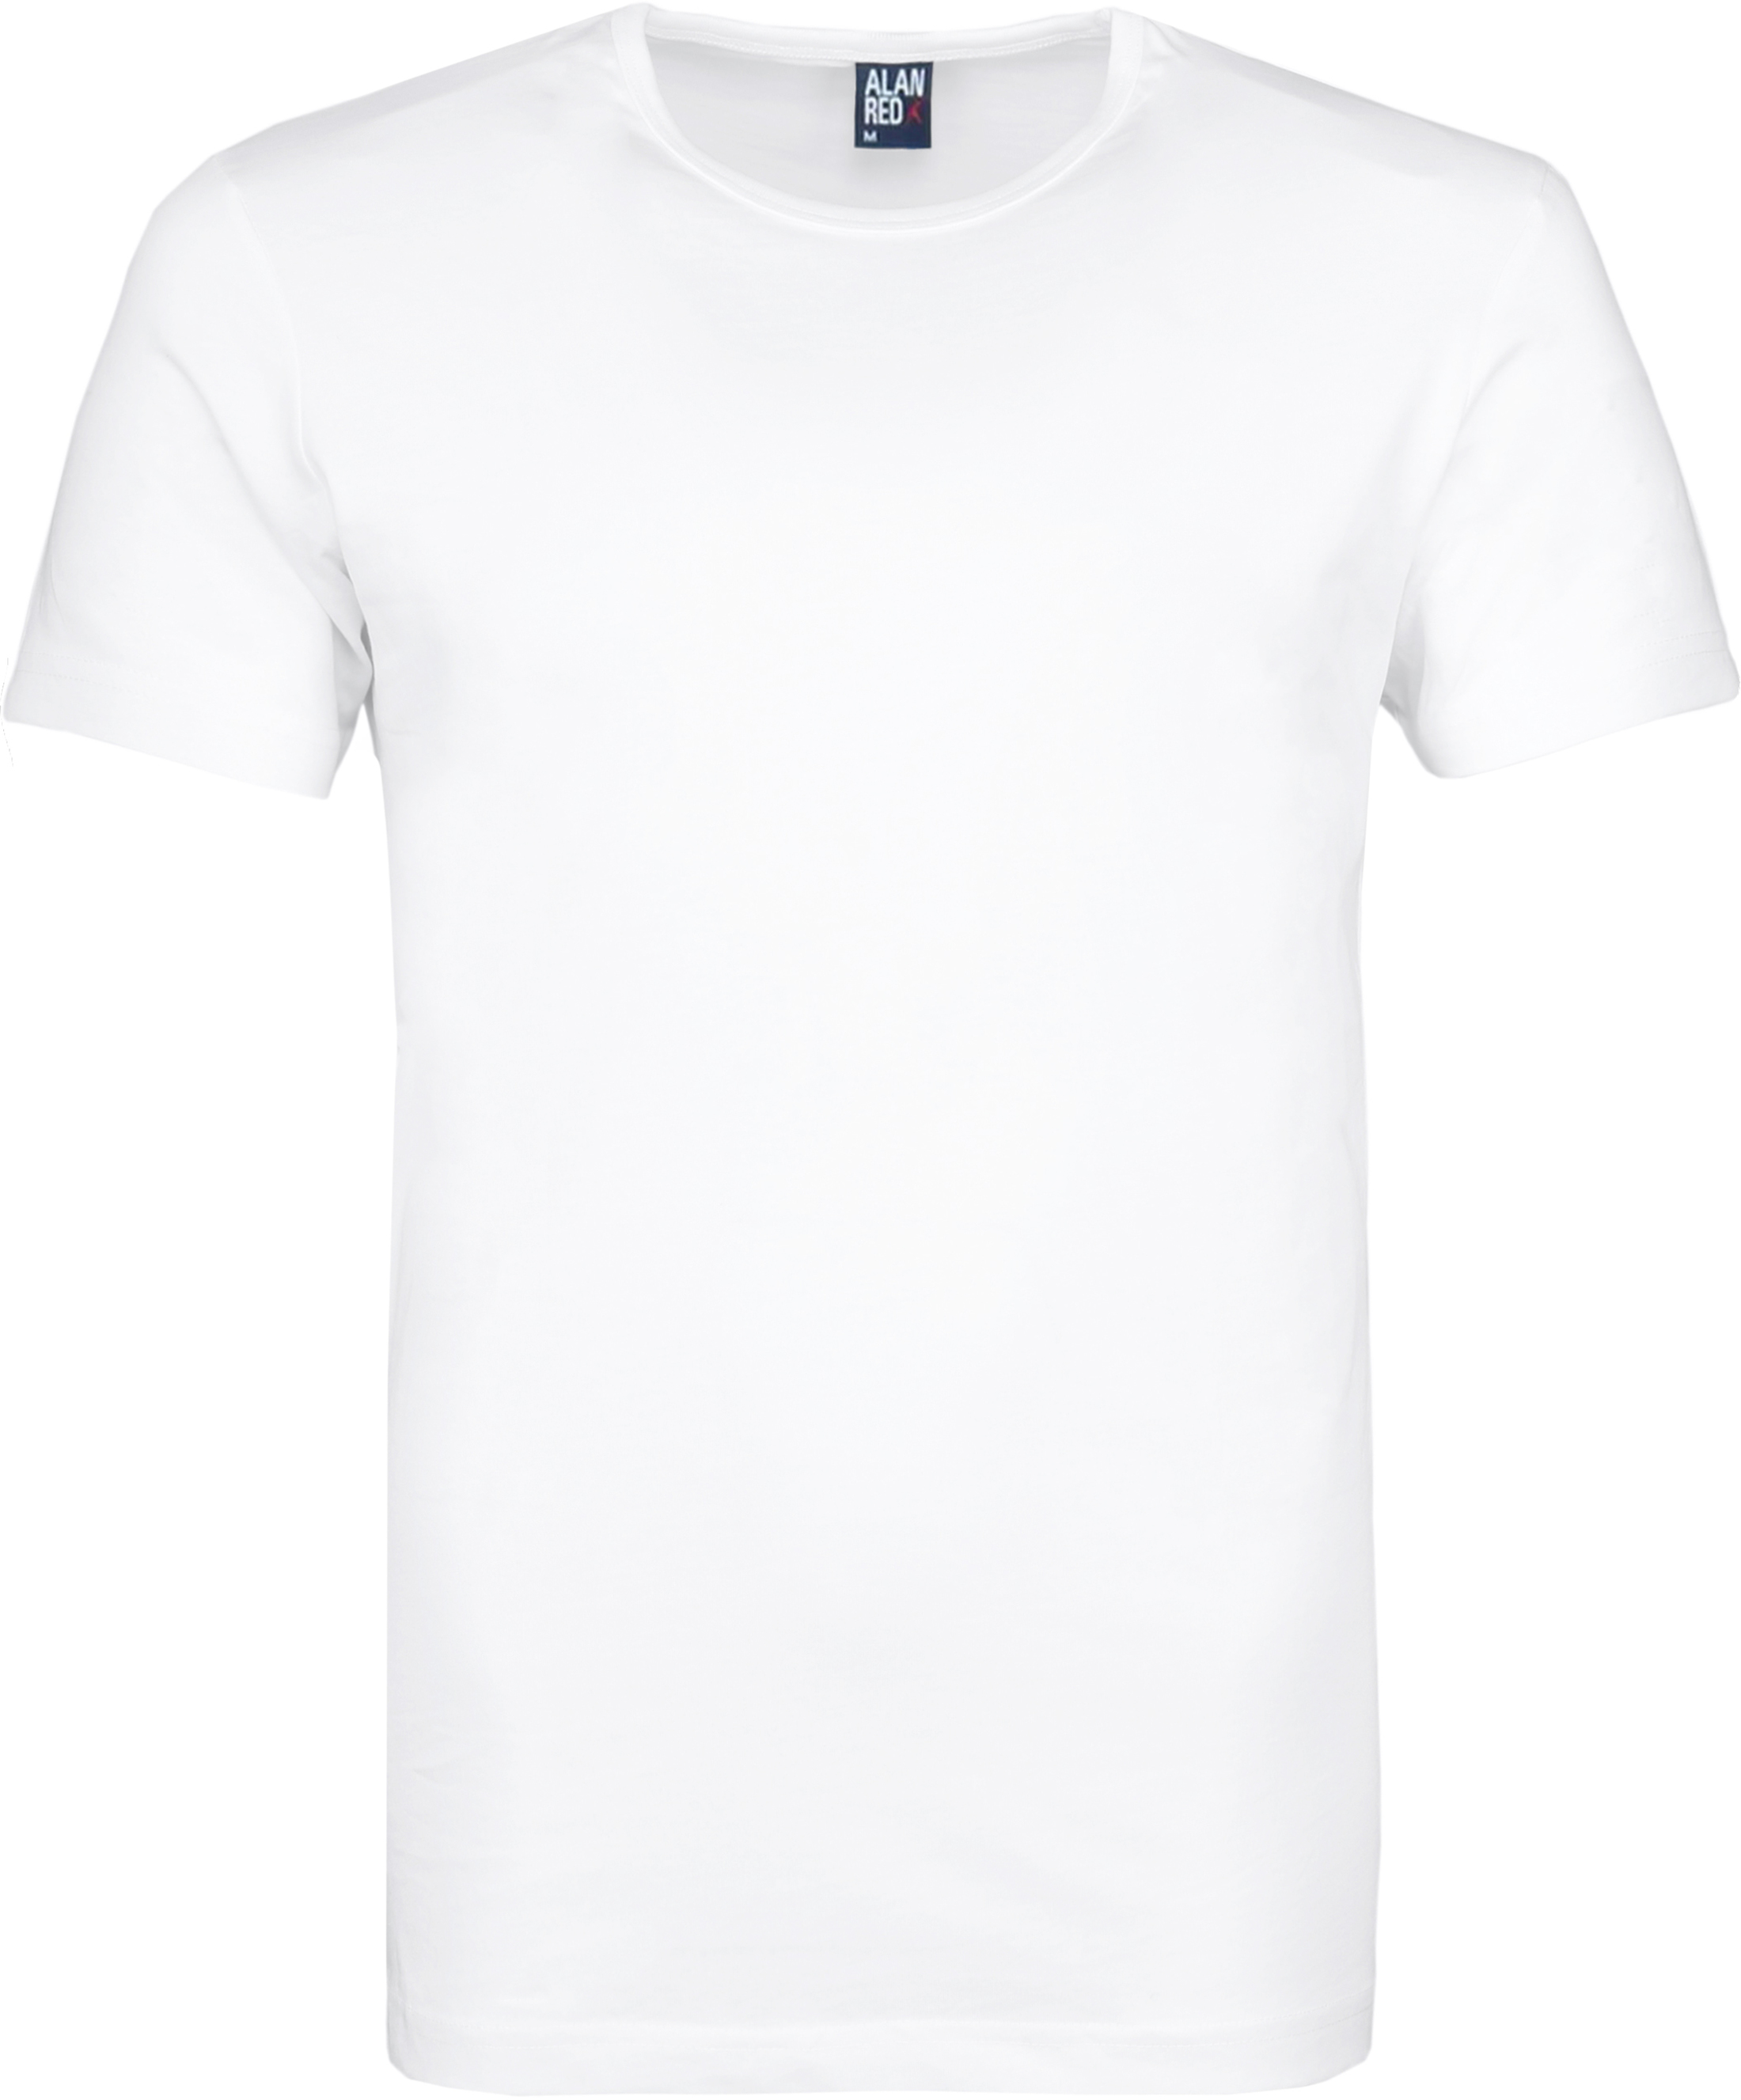 Alan Red Derby Round Neck T-shirt White 2-Pack foto 1